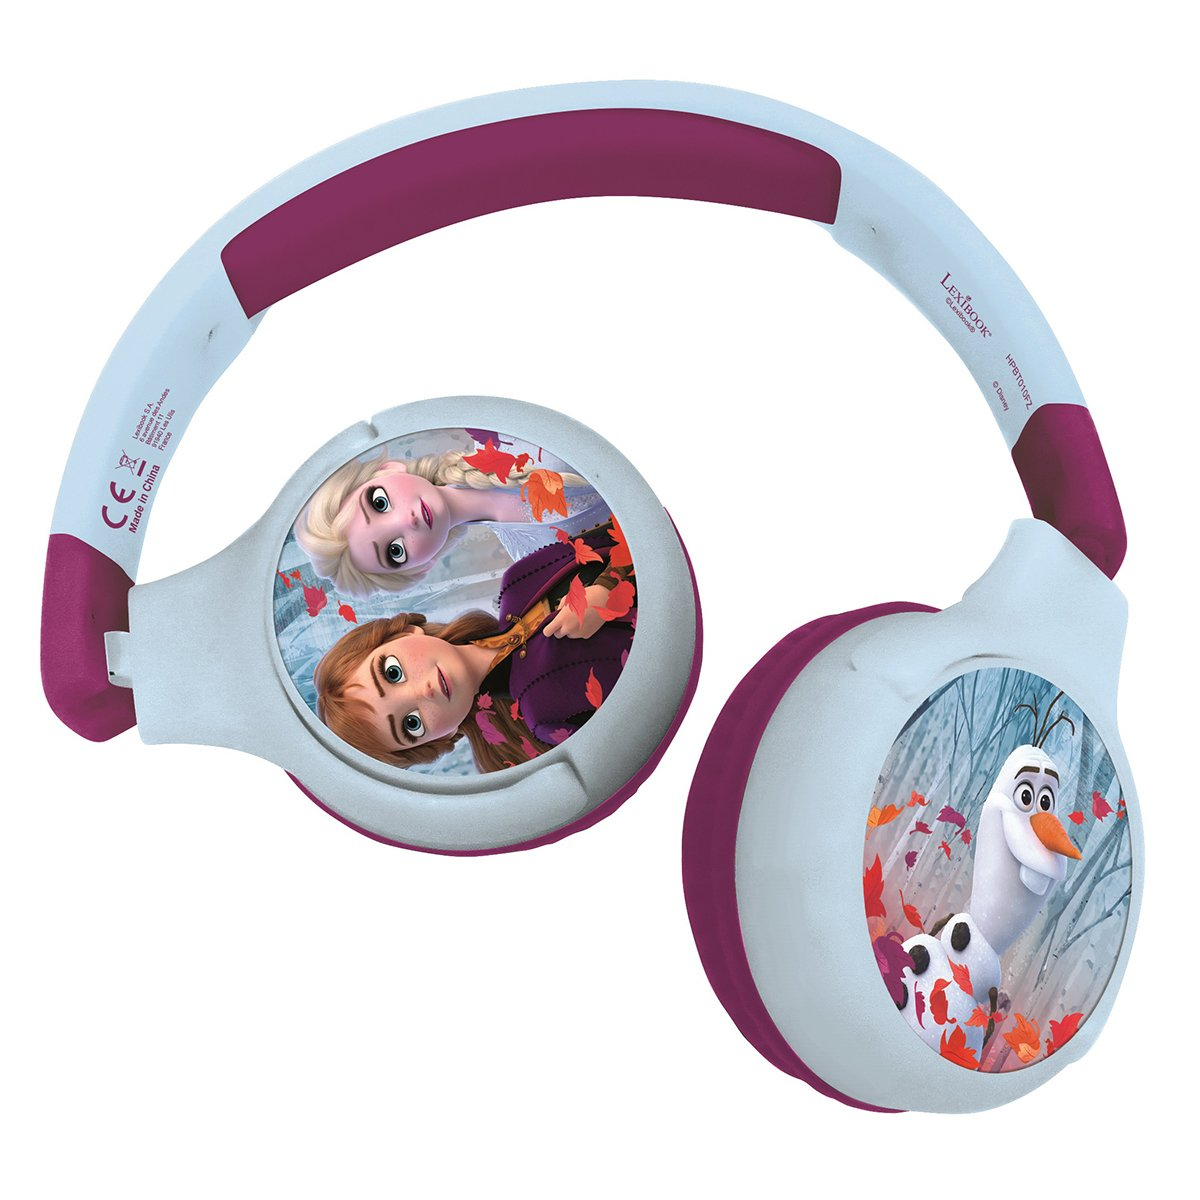 Casti pliabile 2 in 1 Lexibook, Disney Frozen, Jack 3.5 mm, Bluetooth